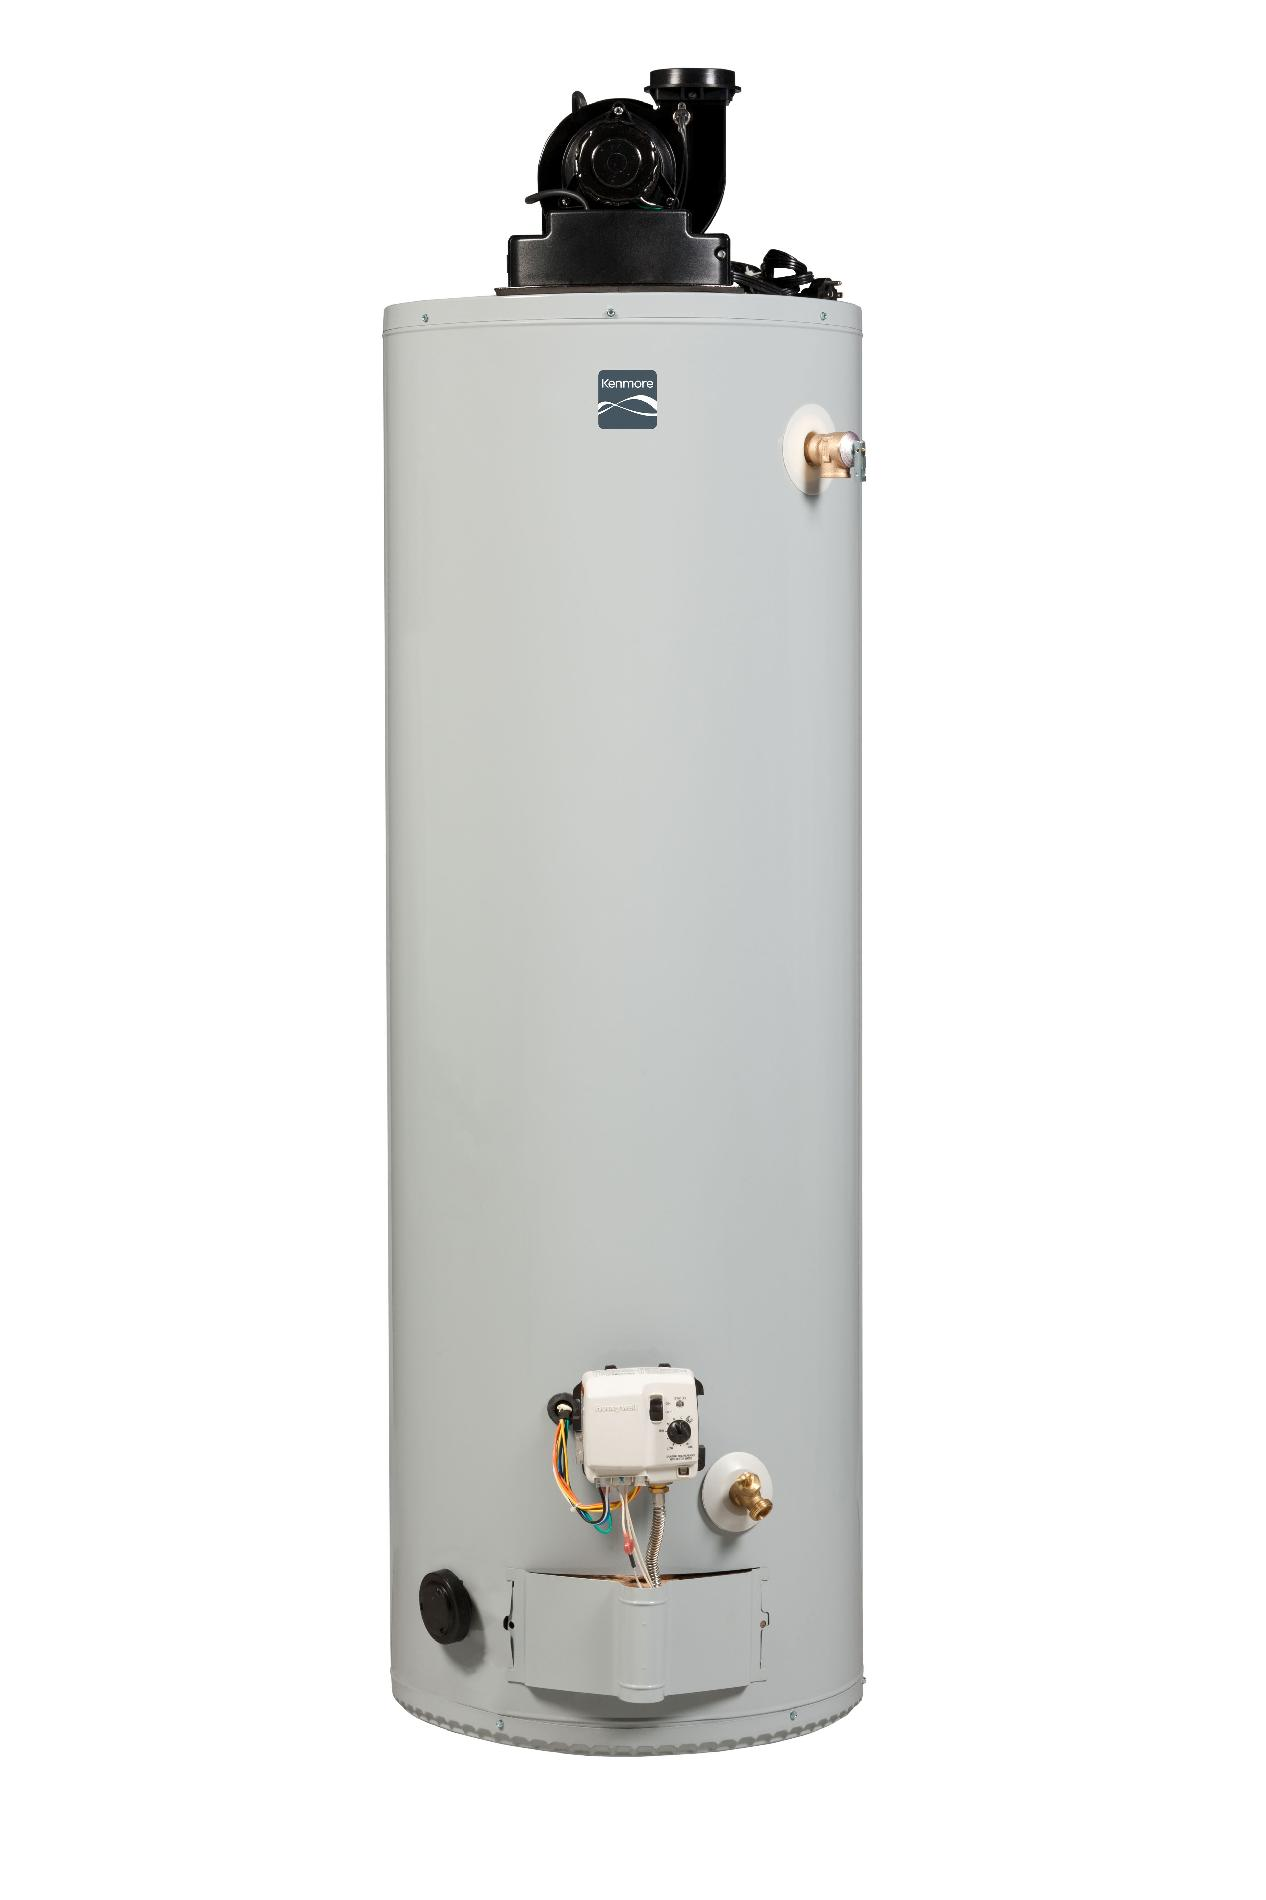 hight resolution of spin prod 869229412 hei 333 wid 333 op sharpen 1 kenmore 33136 50 gal gas power vent water heater wiring diagram